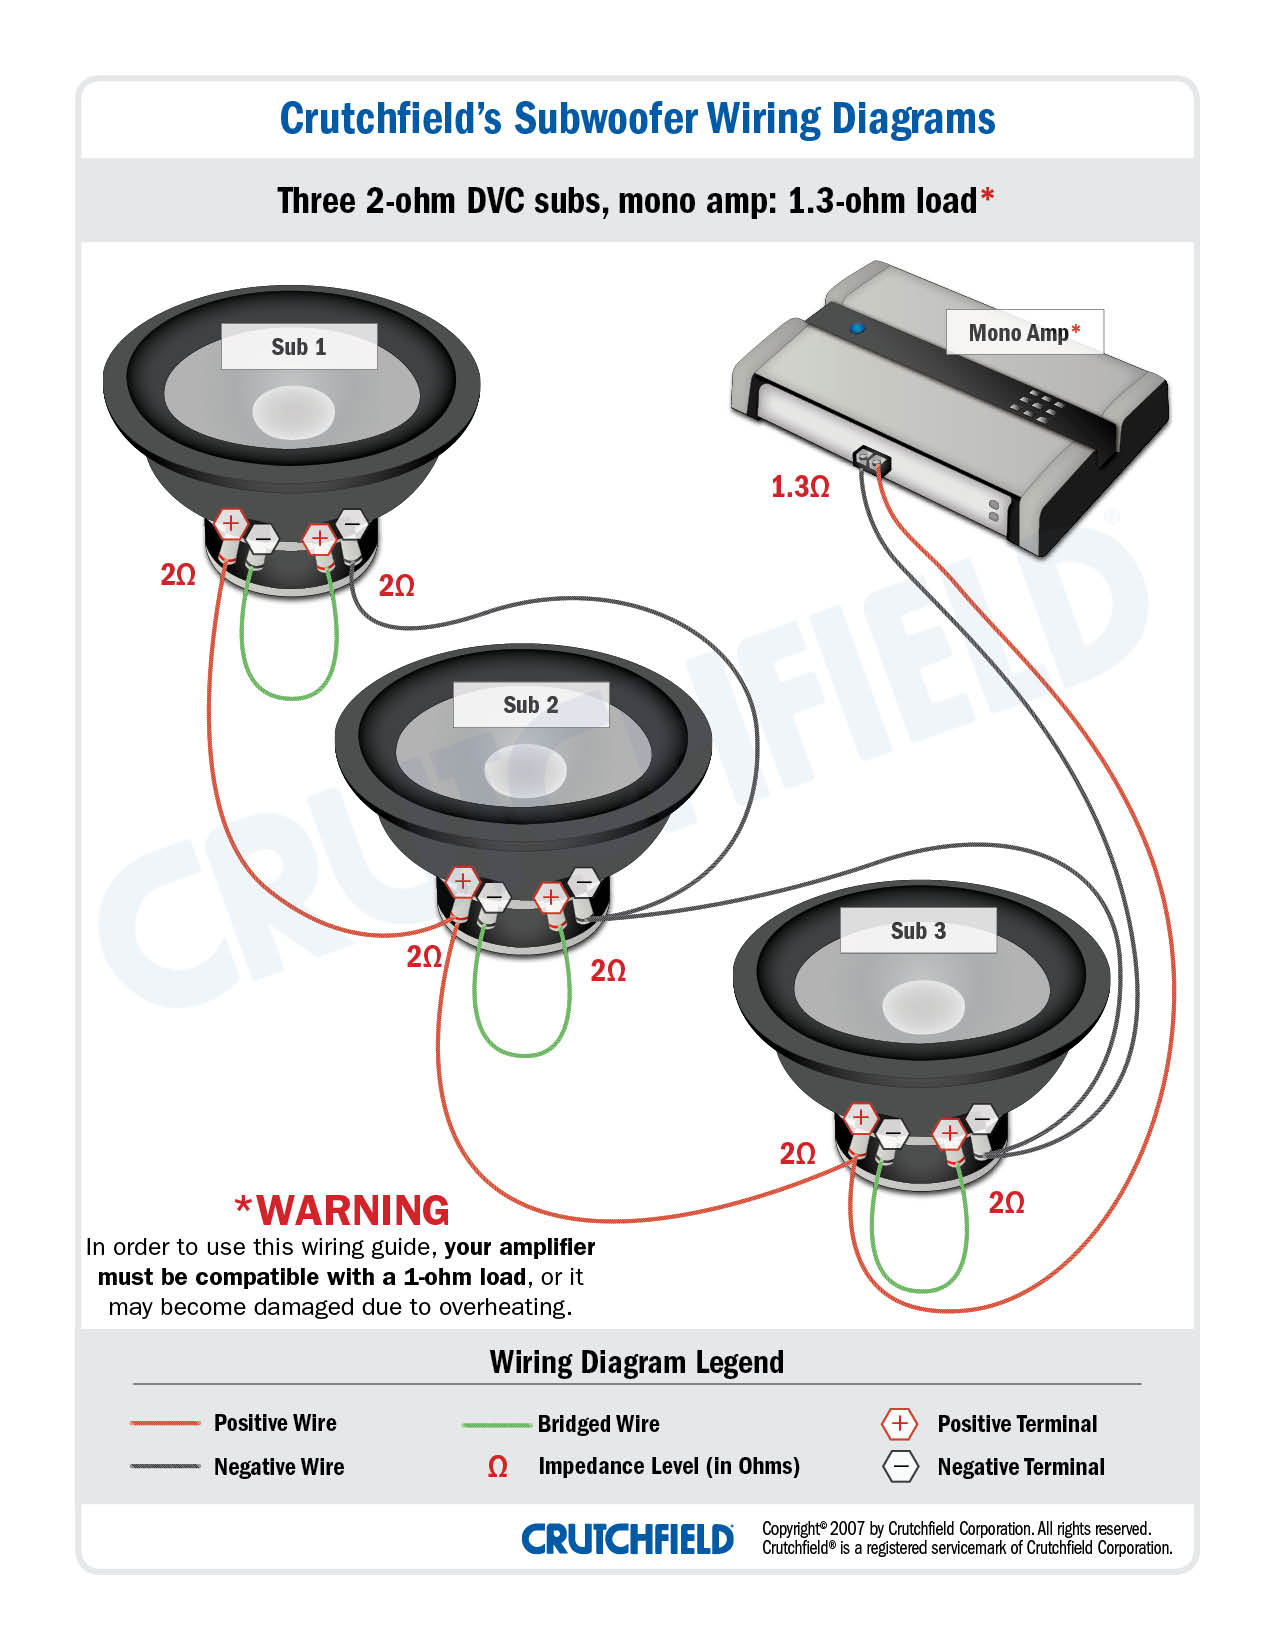 subwoofer wiring diagrams,Wiring diagram,Wiring Diagram For Dvc Subs